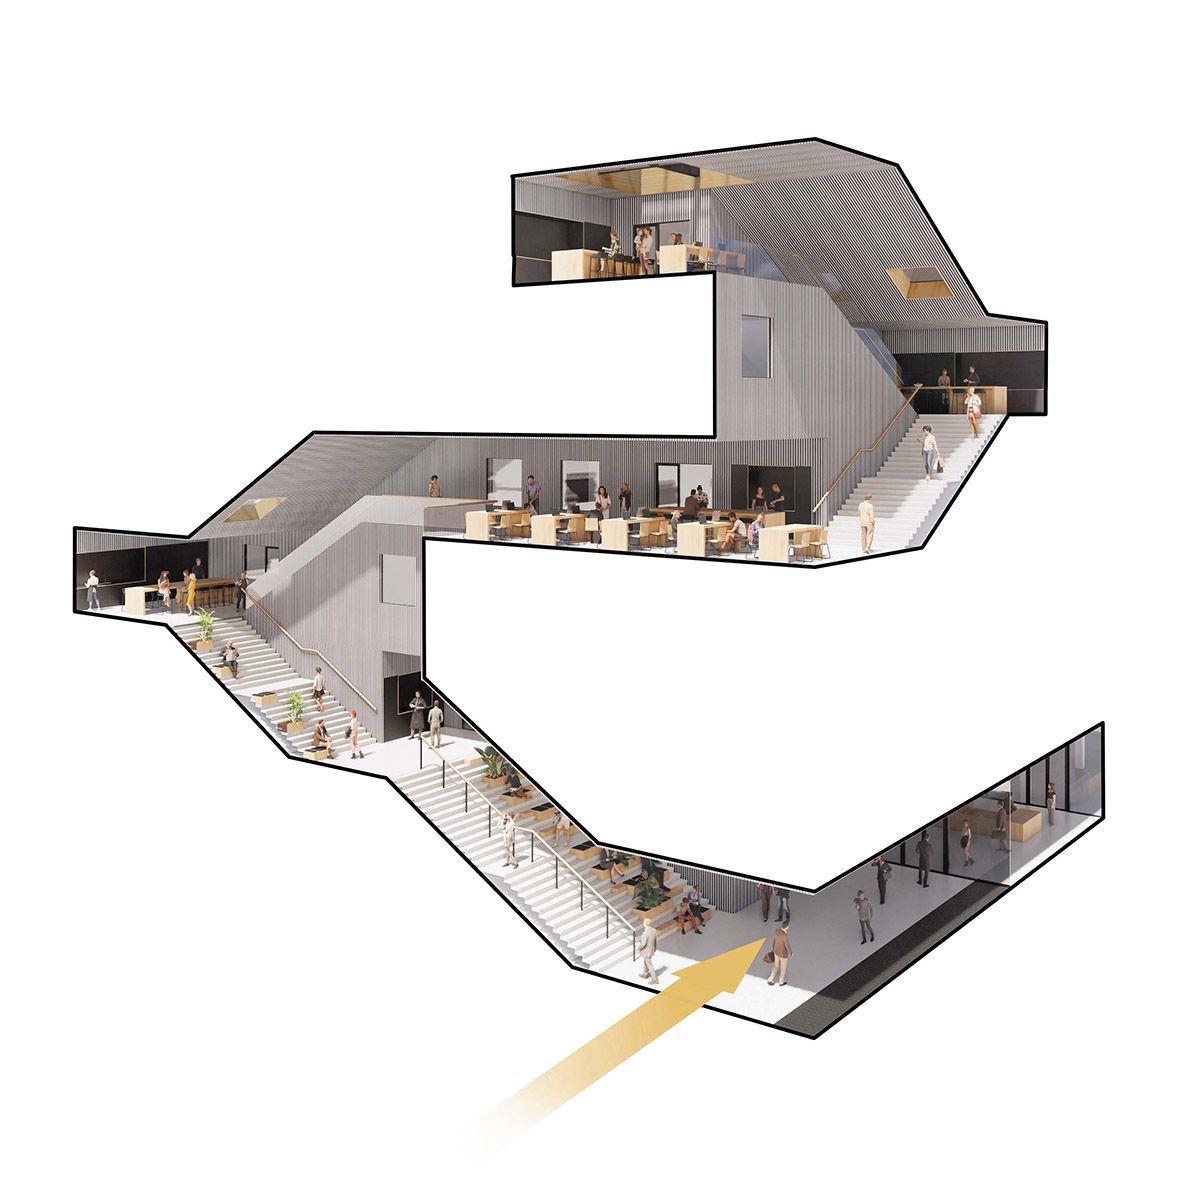 MVRDV releases Matrix 1 office building featuring zigzagging staircase that slices façade